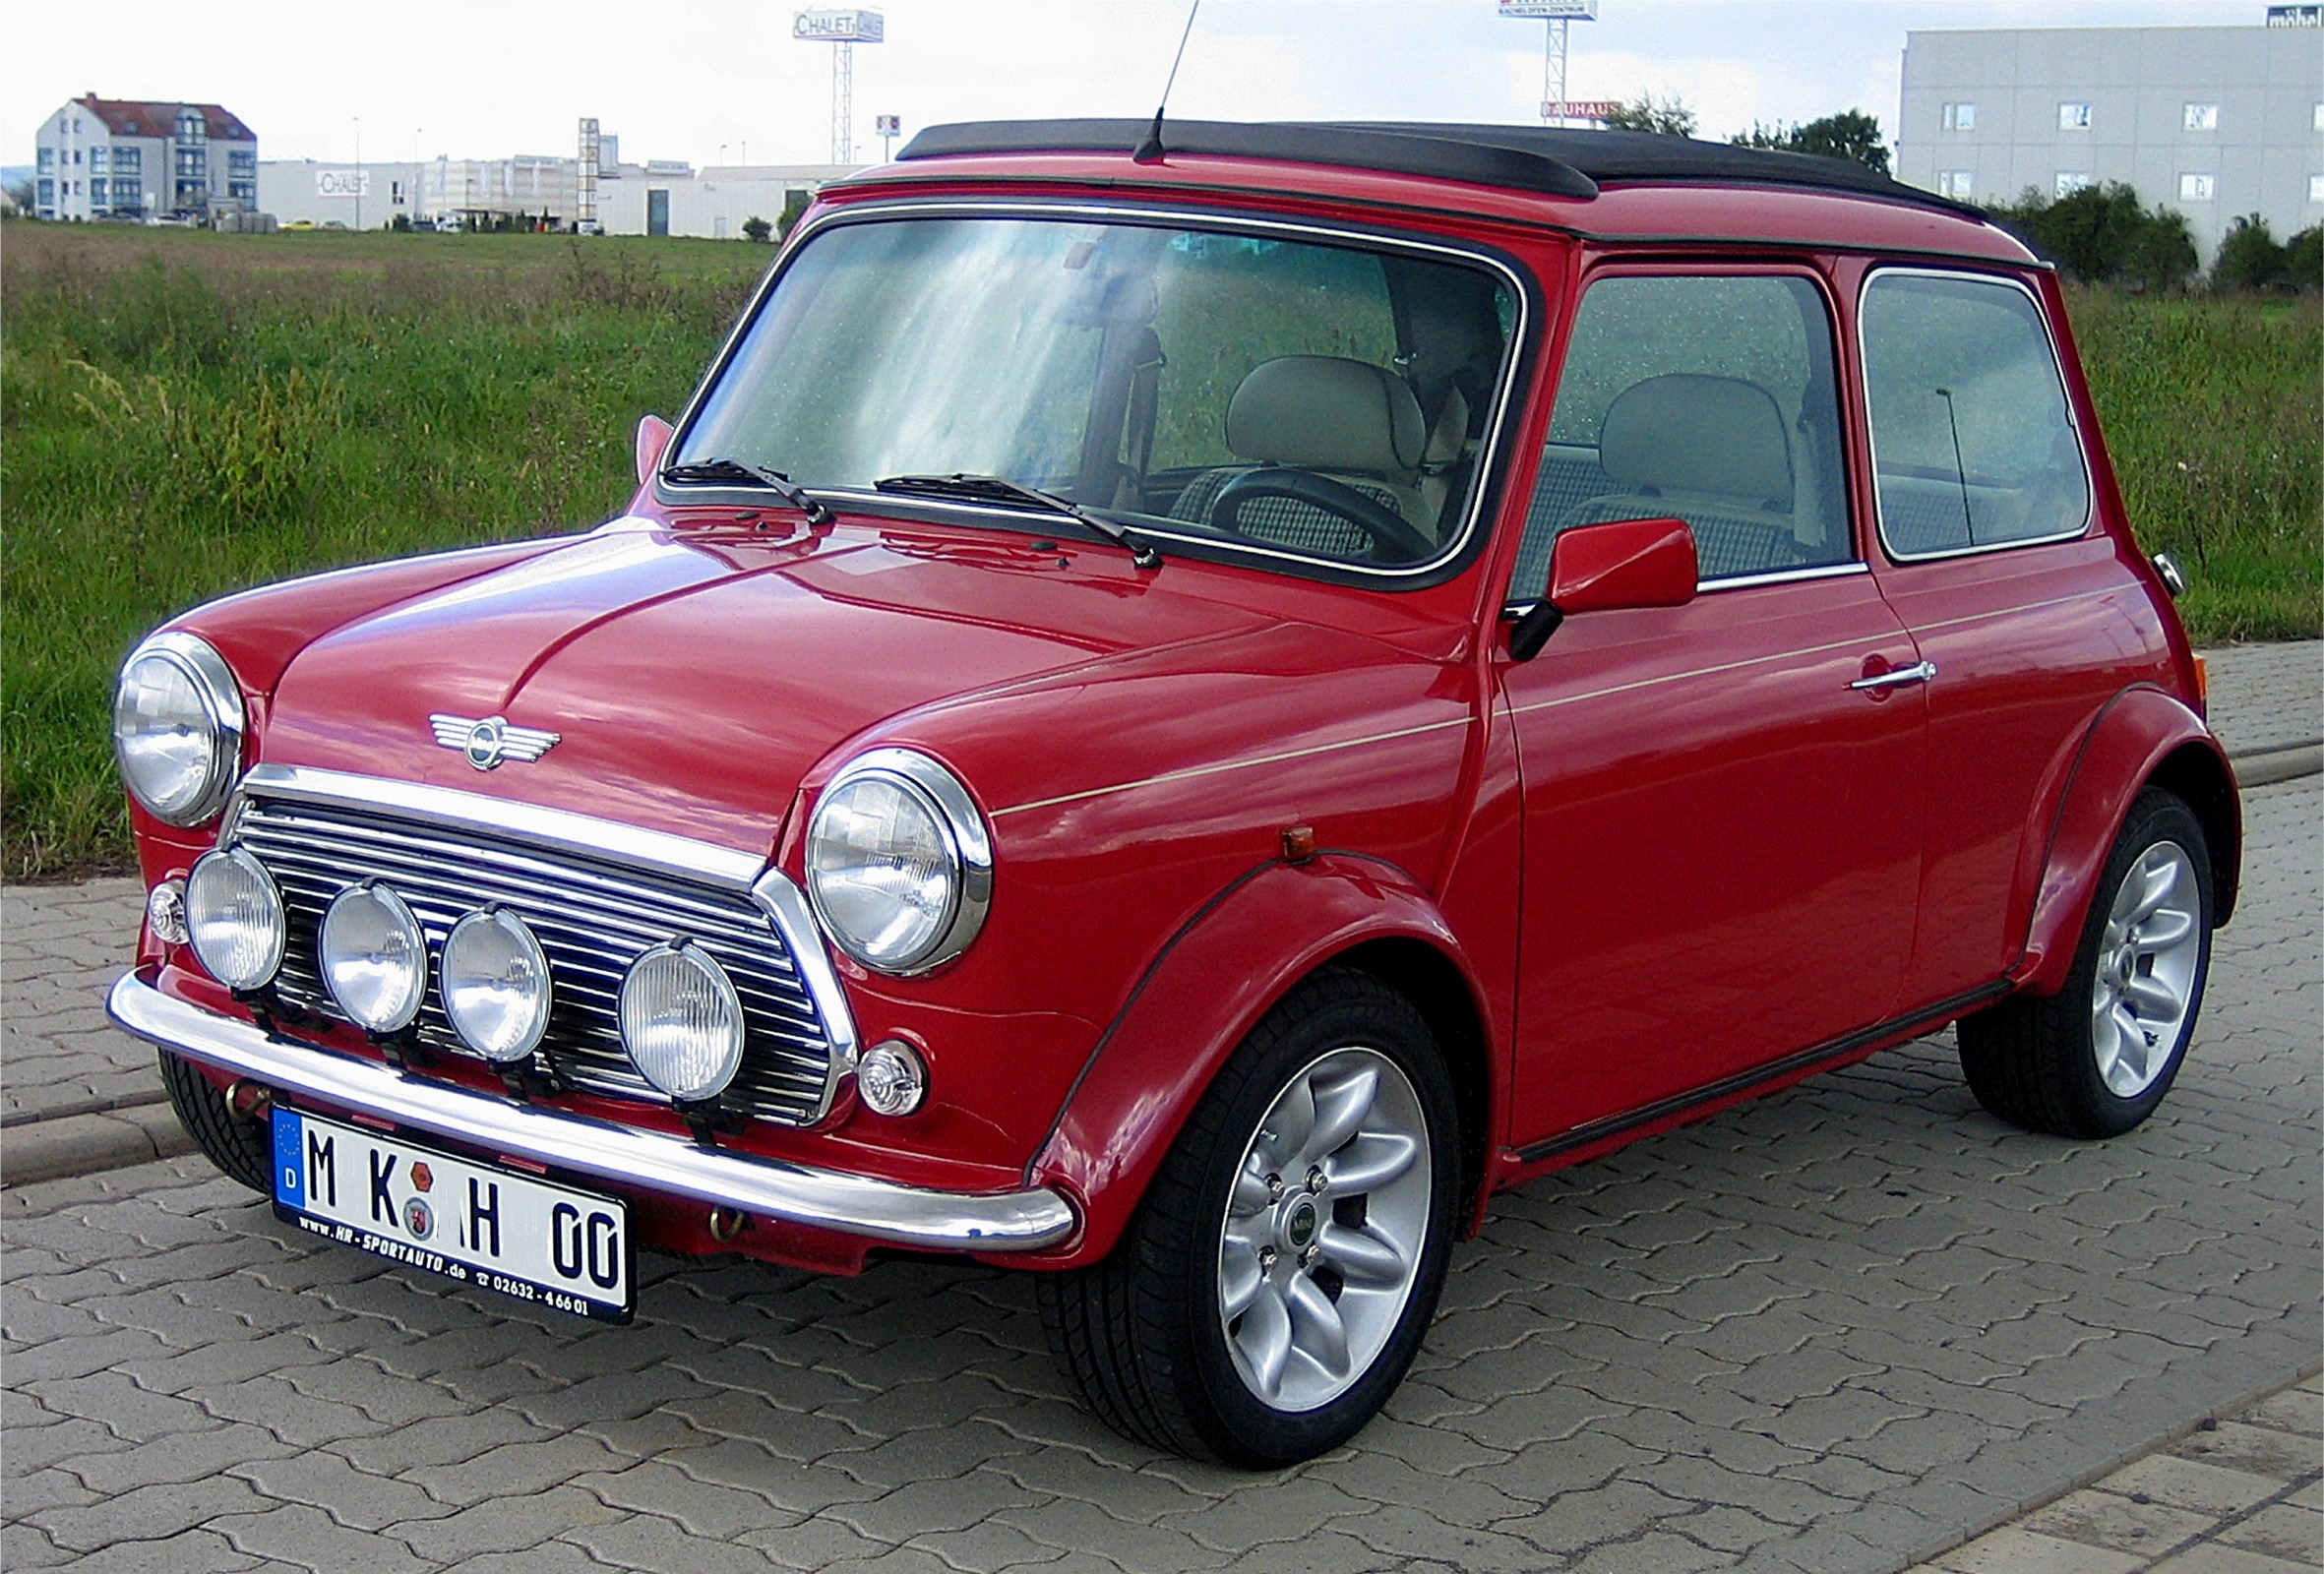 http://upload.wikimedia.org/wikipedia/commons/5/5e/Austin_Mini,_Baujahr_2000_-_2005-09-17.jpg